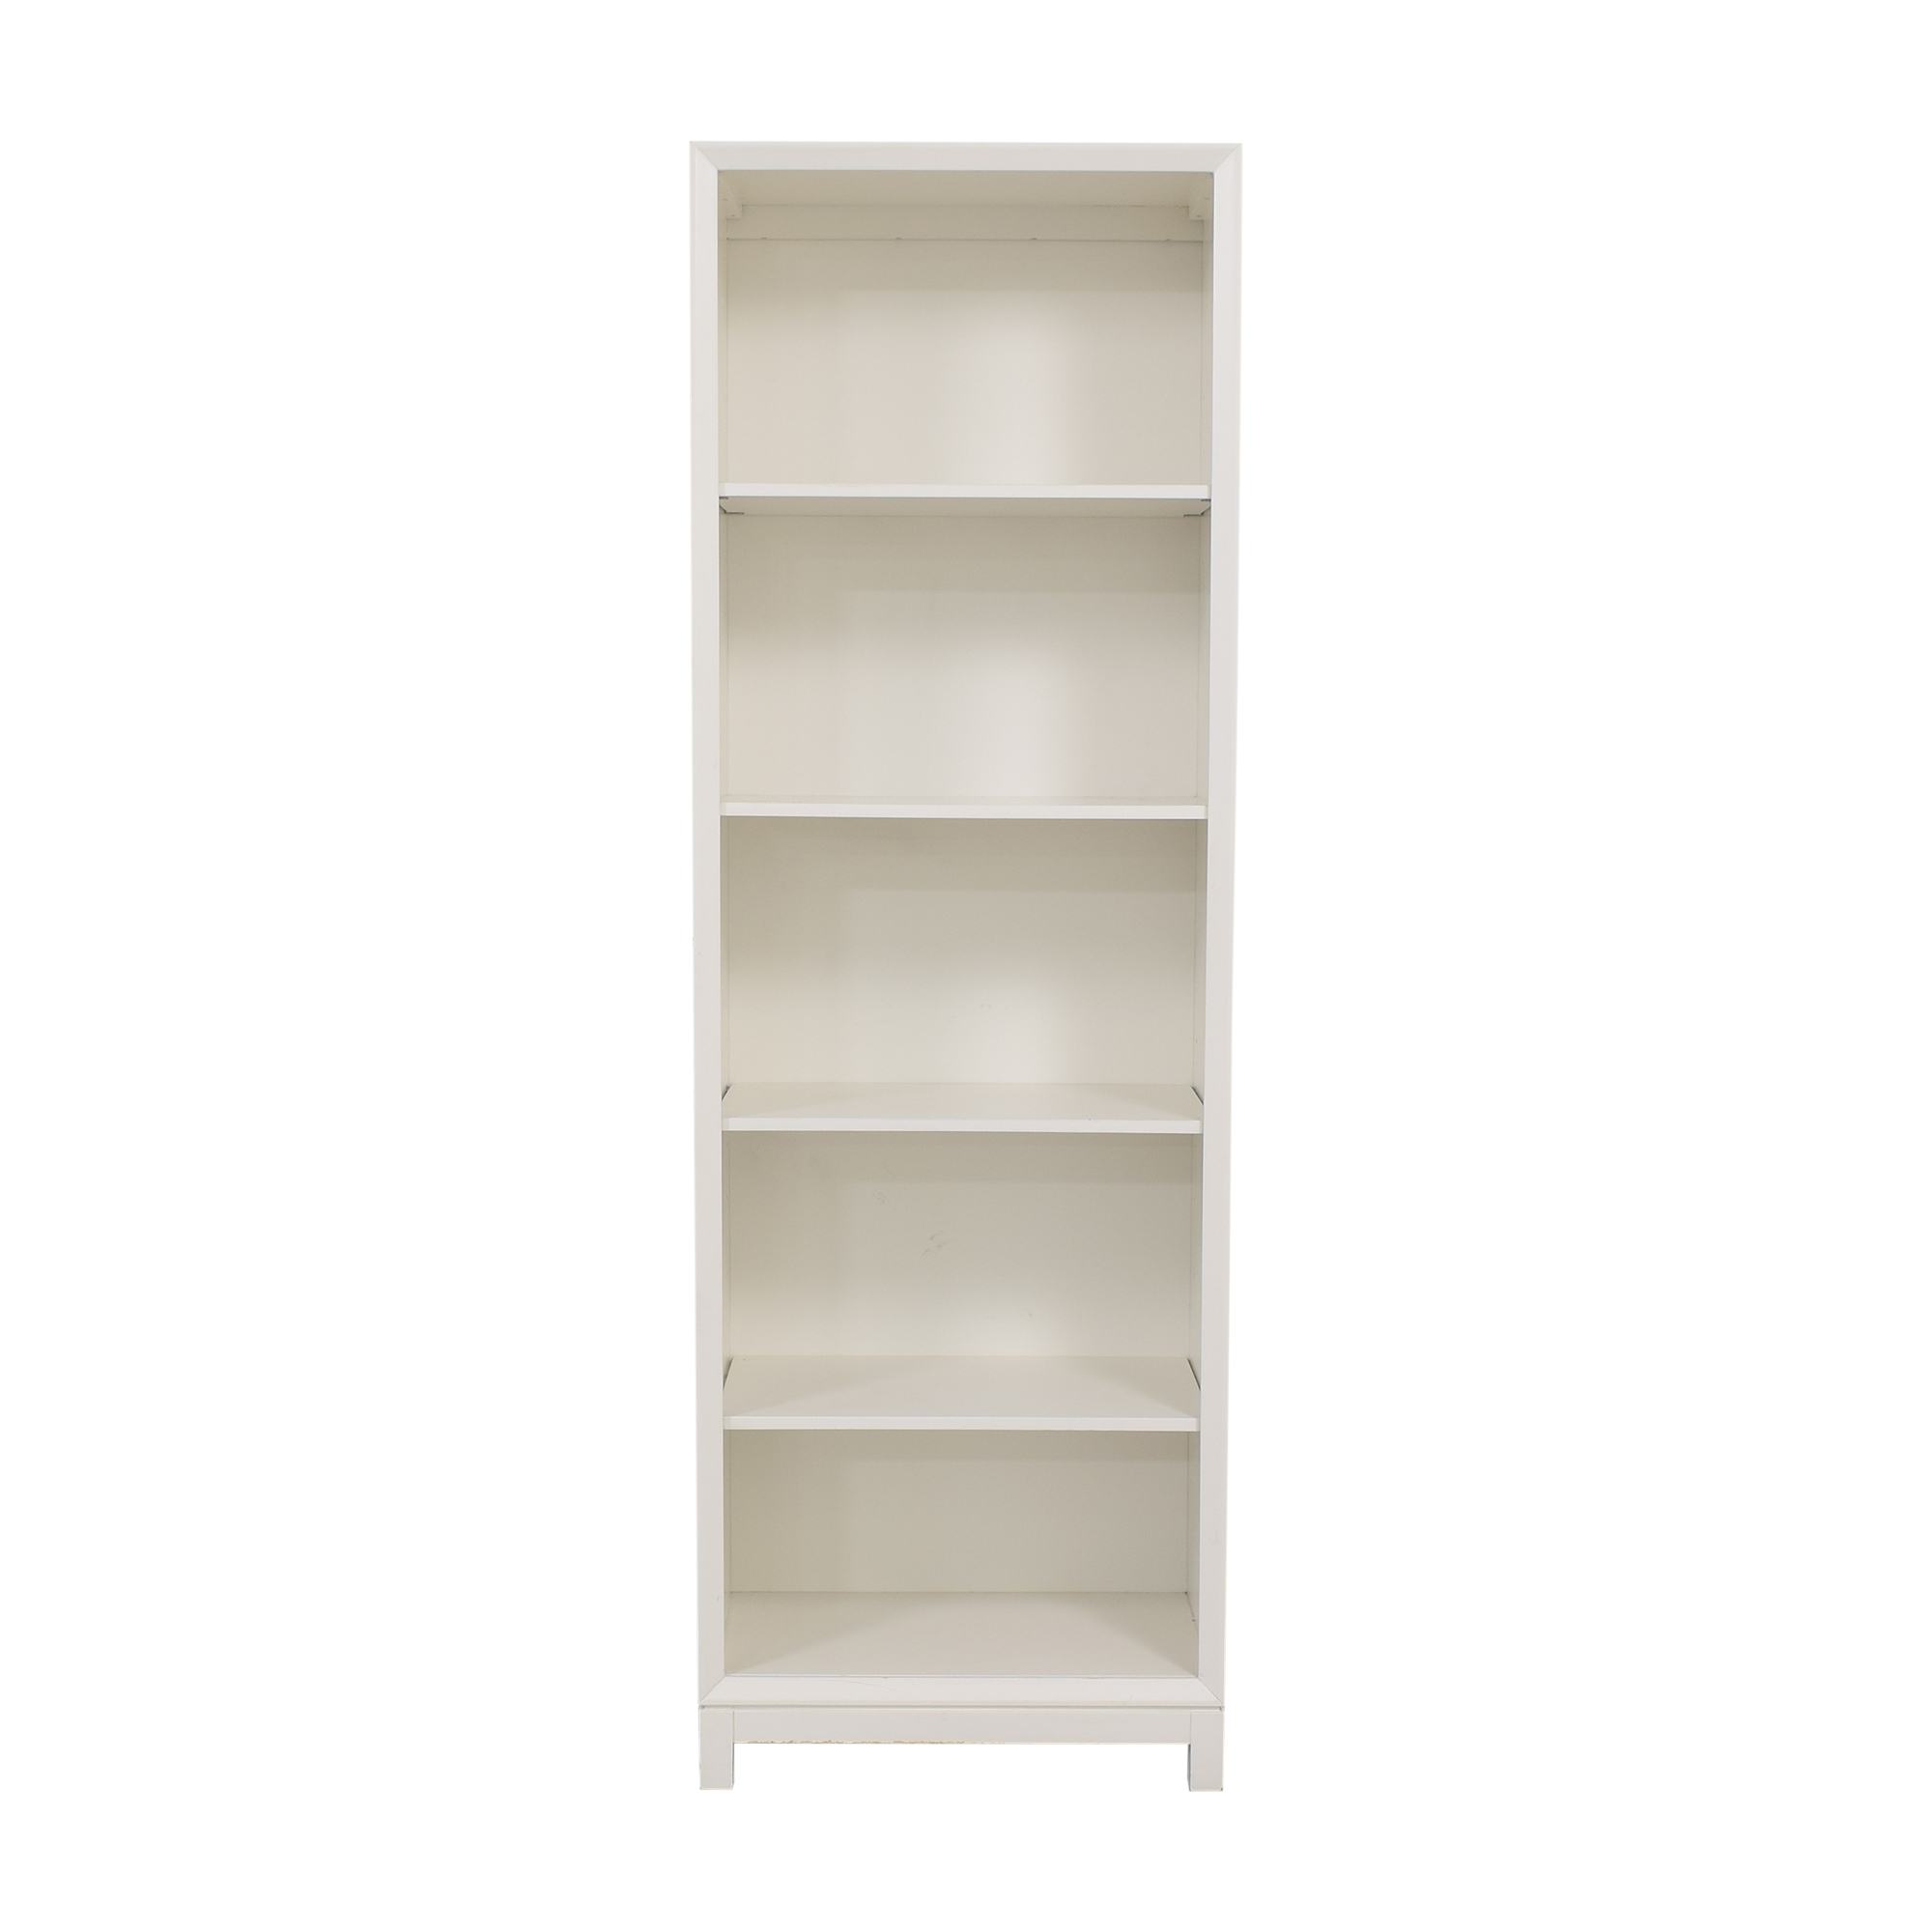 shop Pottery Barn Teen Pottery Barn Teen Rowan Tower Bookcase online